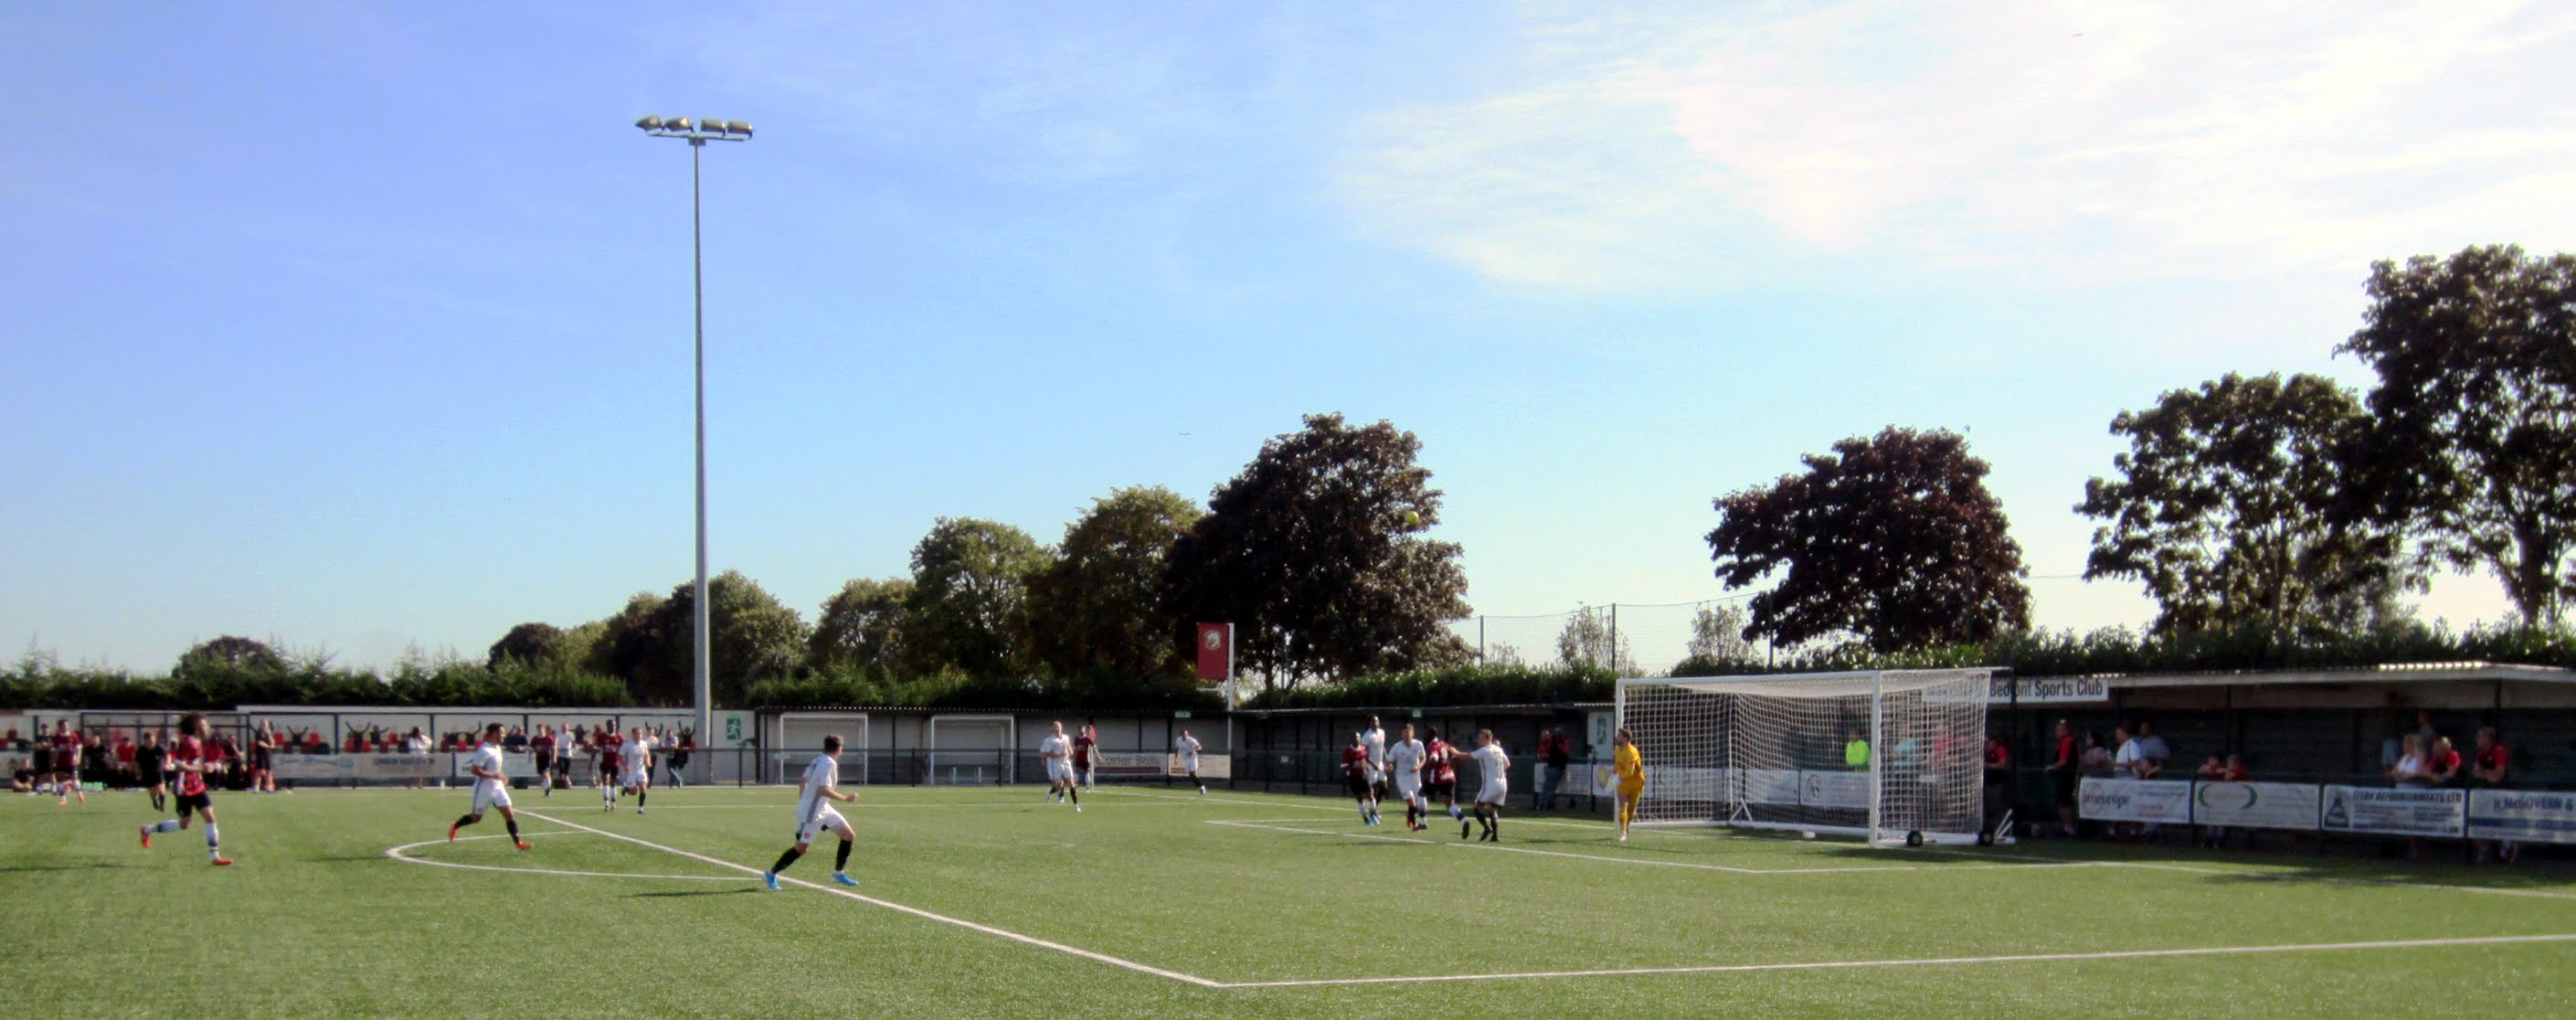 Action from the Bedfont Sports vs. Bracknell Town game